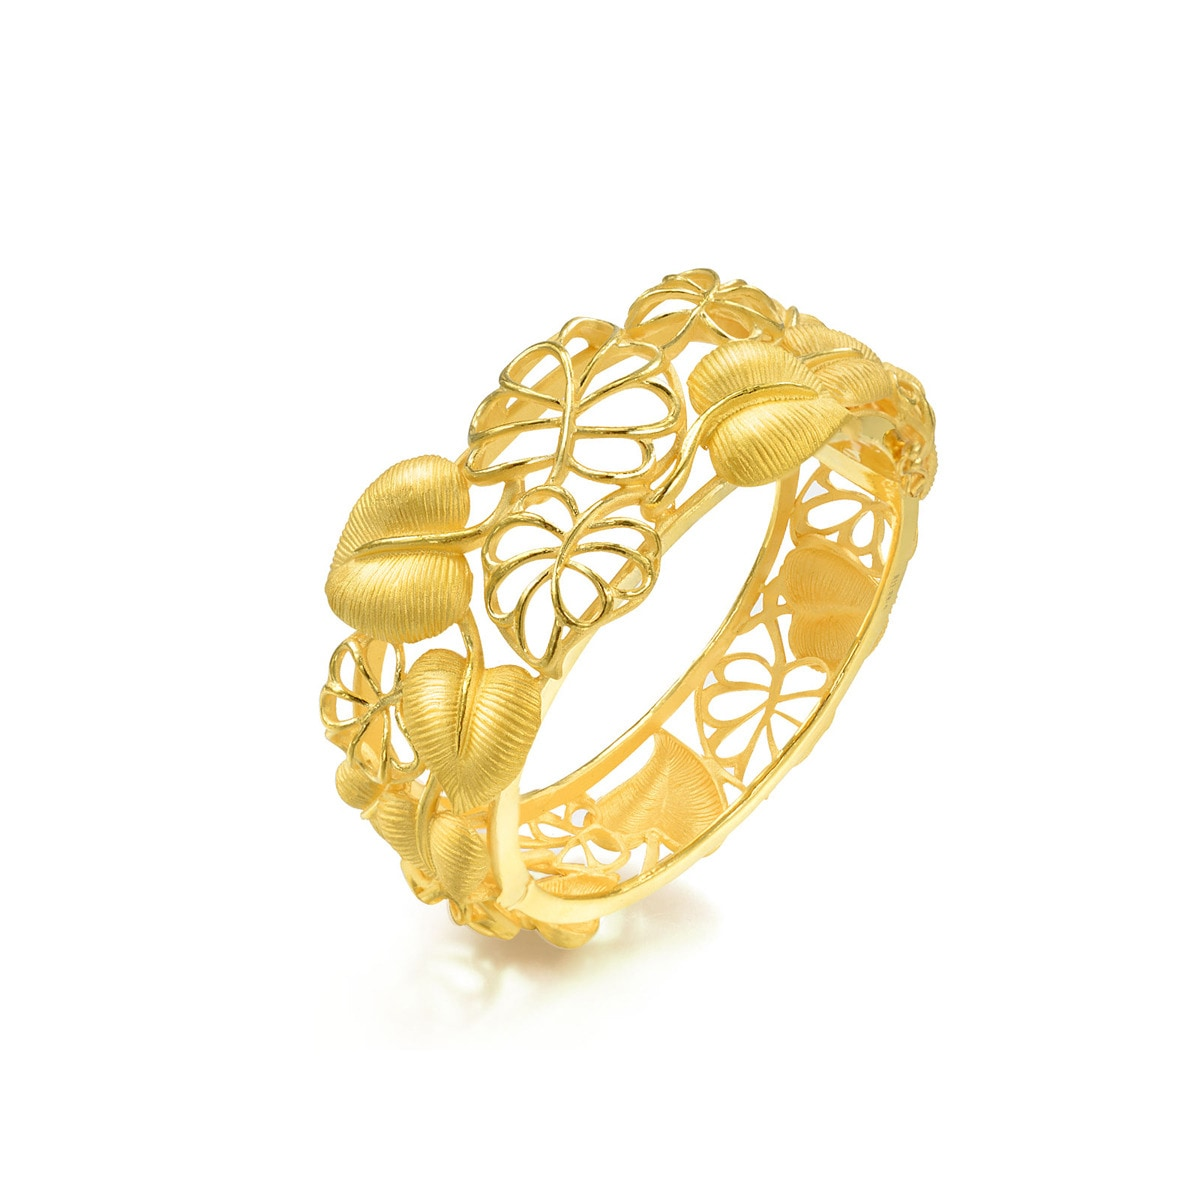 chinese wedding collection 'floral' 999.9 gold bangle   chow sang